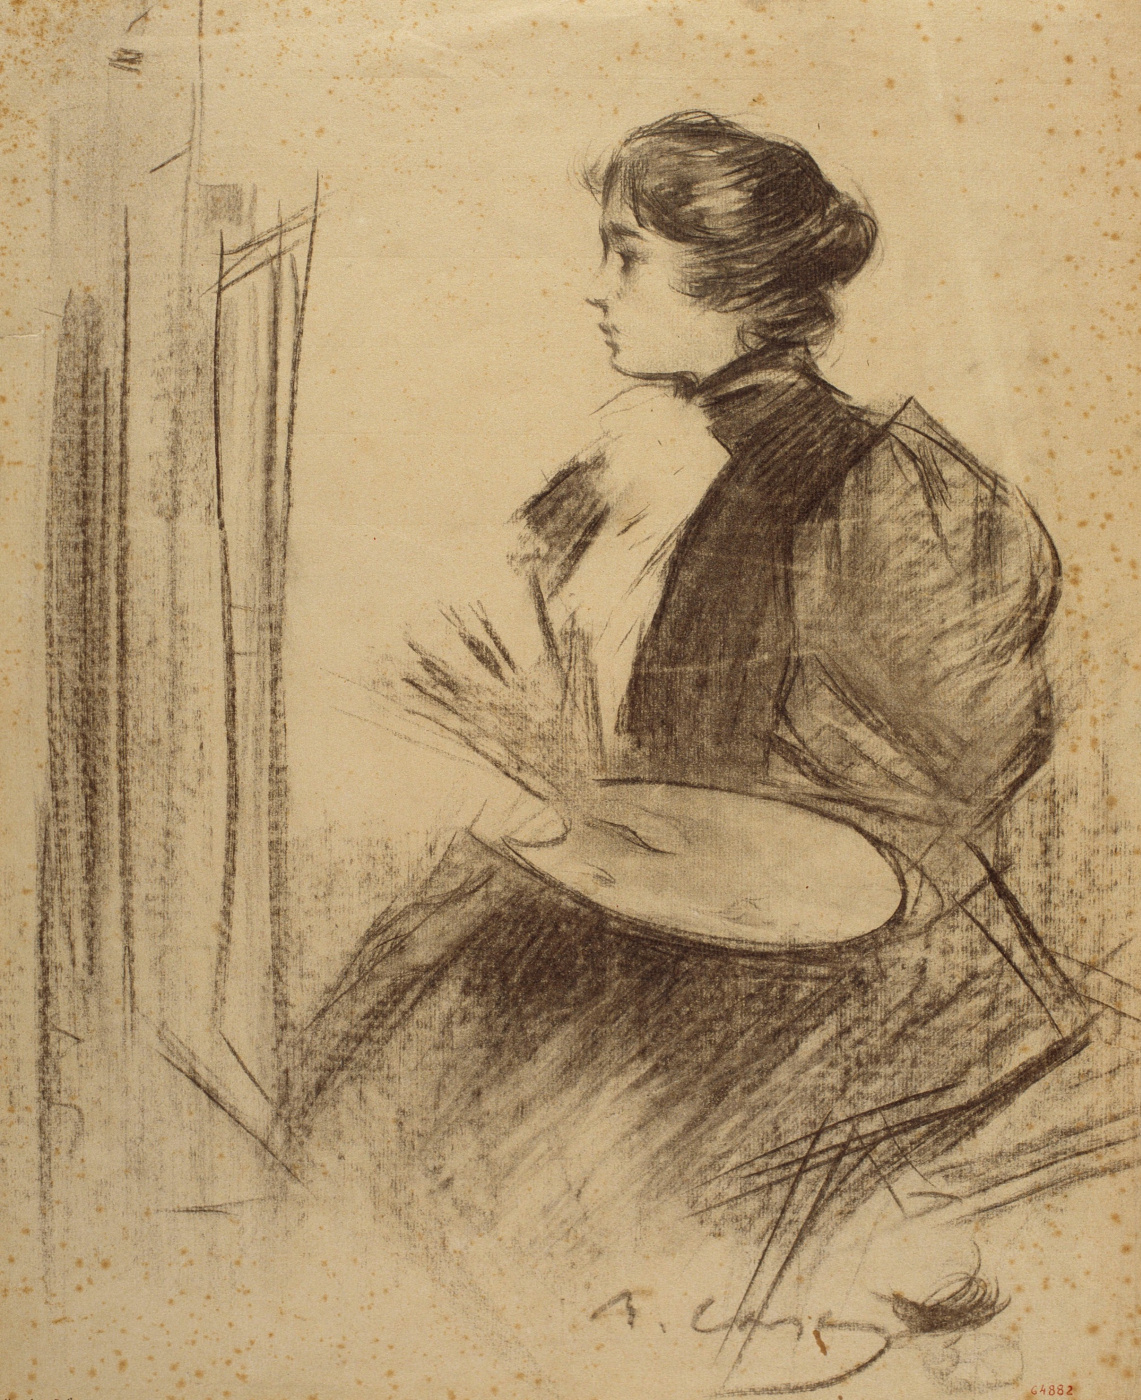 Ramon Casas i Carbó. The artist at work. Sketch